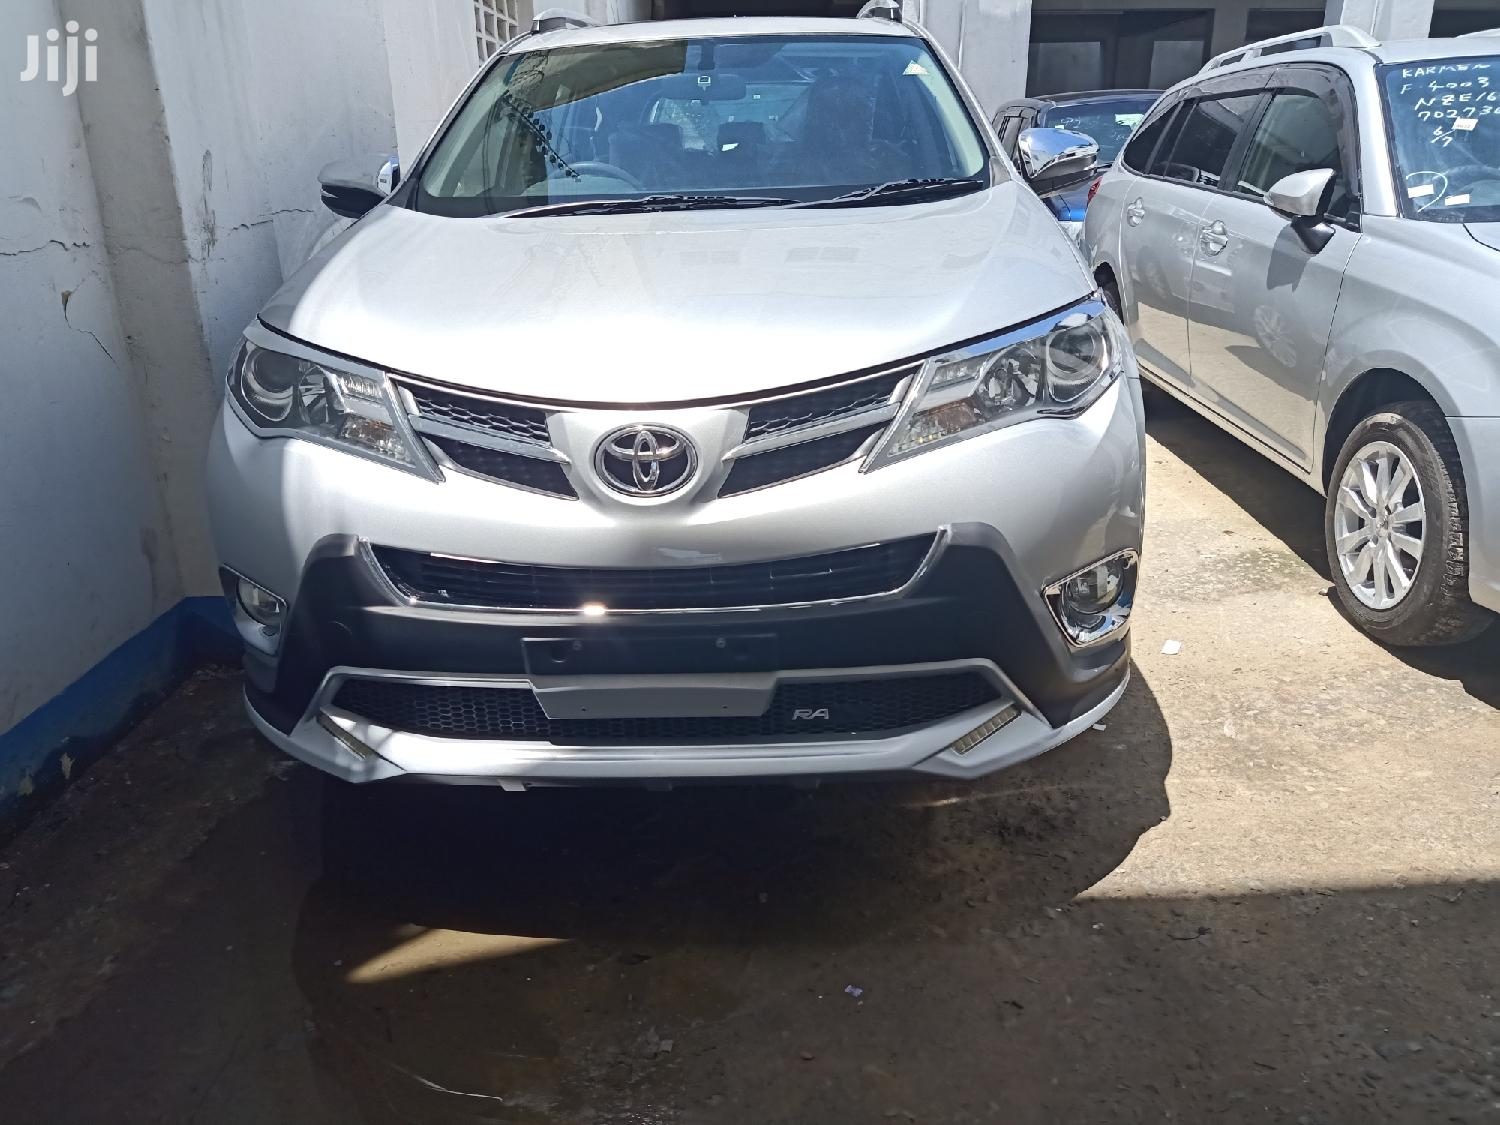 toyota rav4 2015 silver in shimanzi ganjoni cars paul mwiti jiji co ke for sale in shimanzi ganjoni buy cars from paul mwiti on jiji co ke toyota rav4 2015 silver